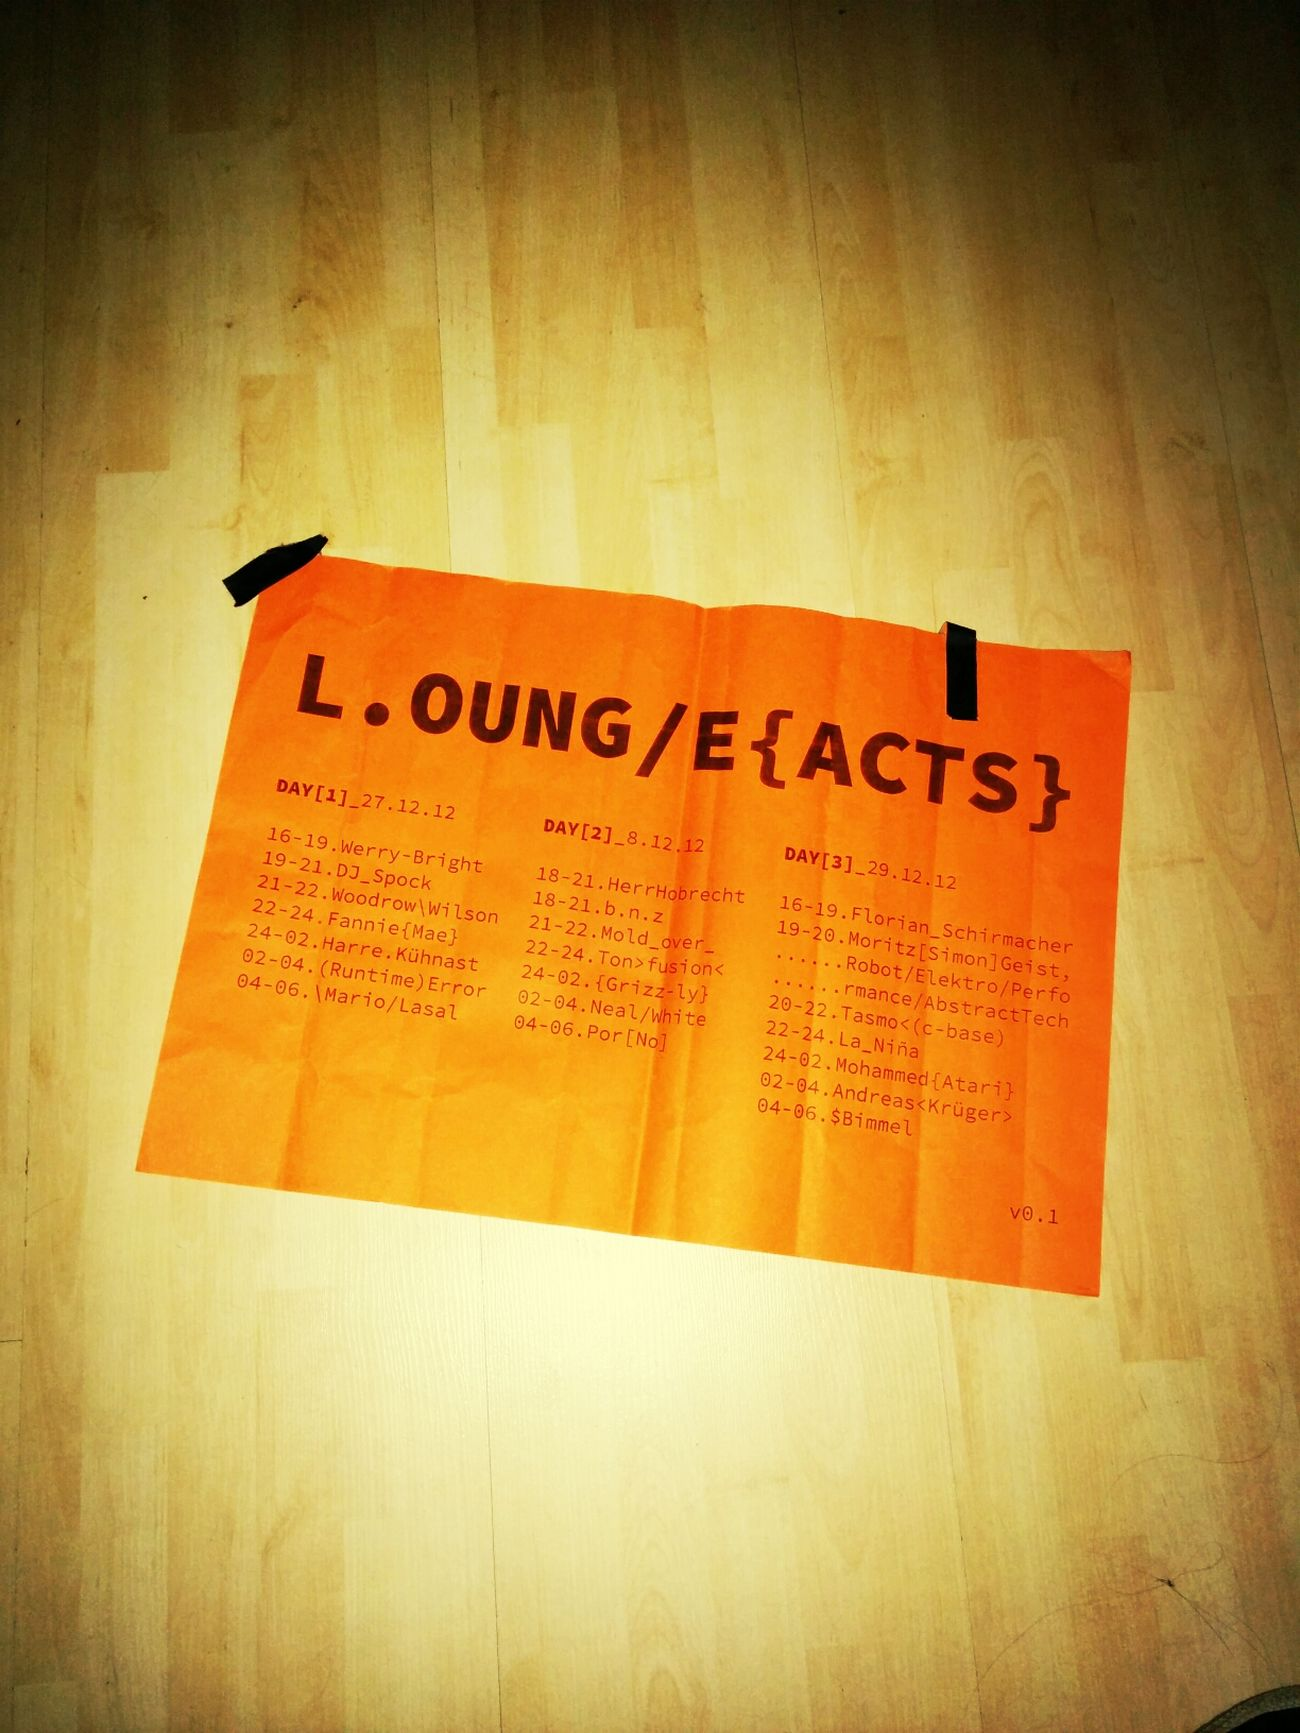 29c3 lounge acts / fahrplan / lineup